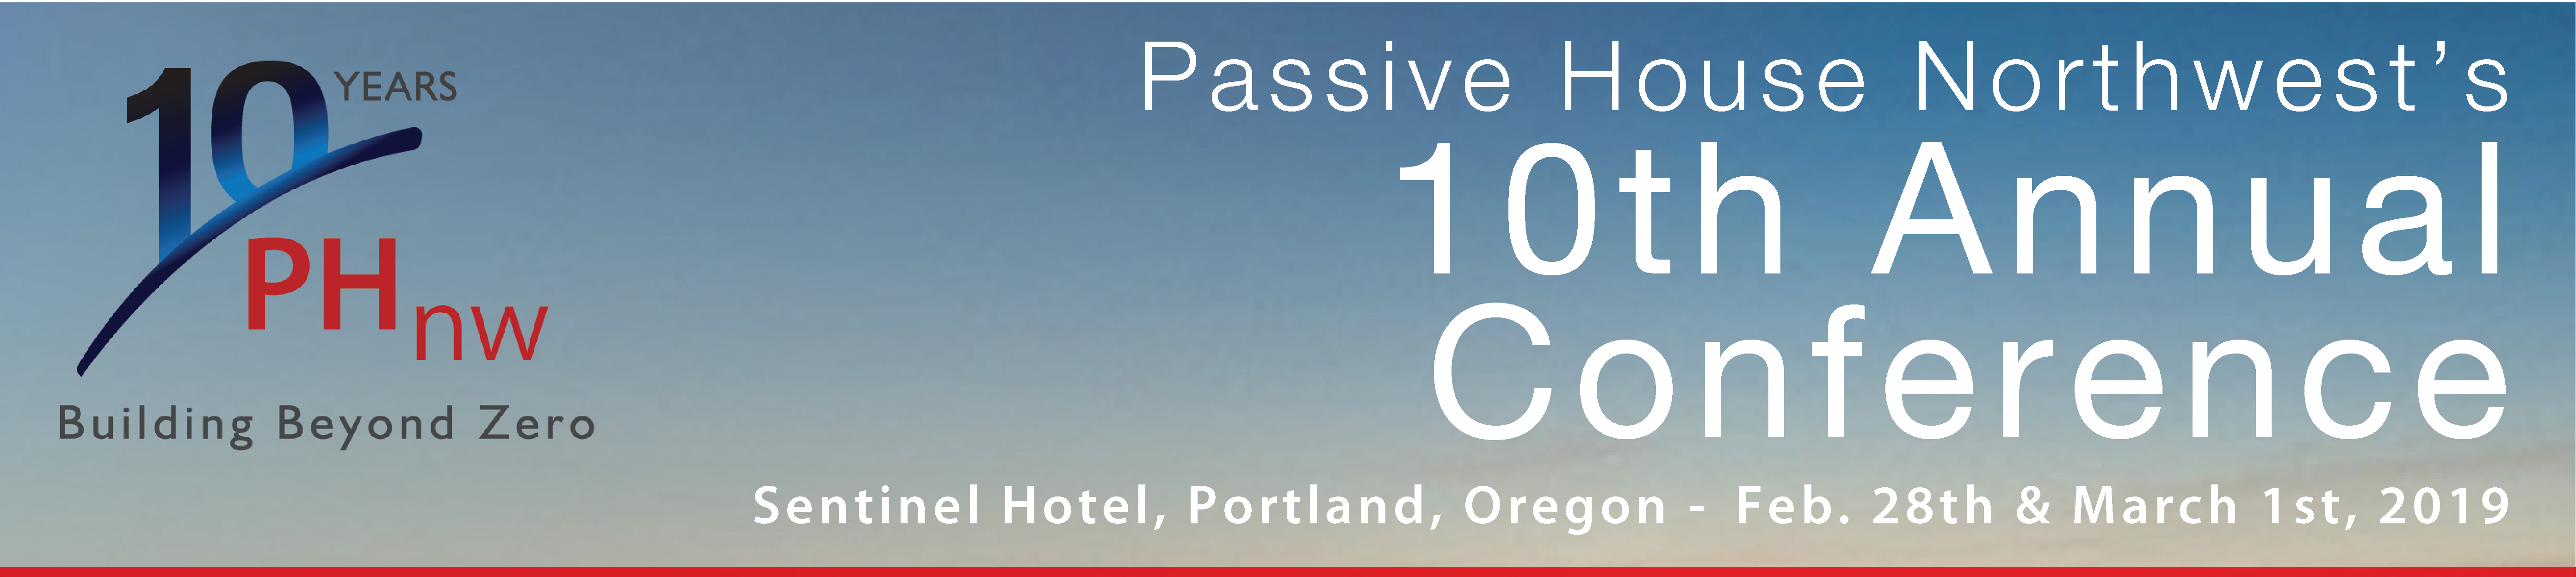 Partner Event - Passive House NW - 10th Annual Conference